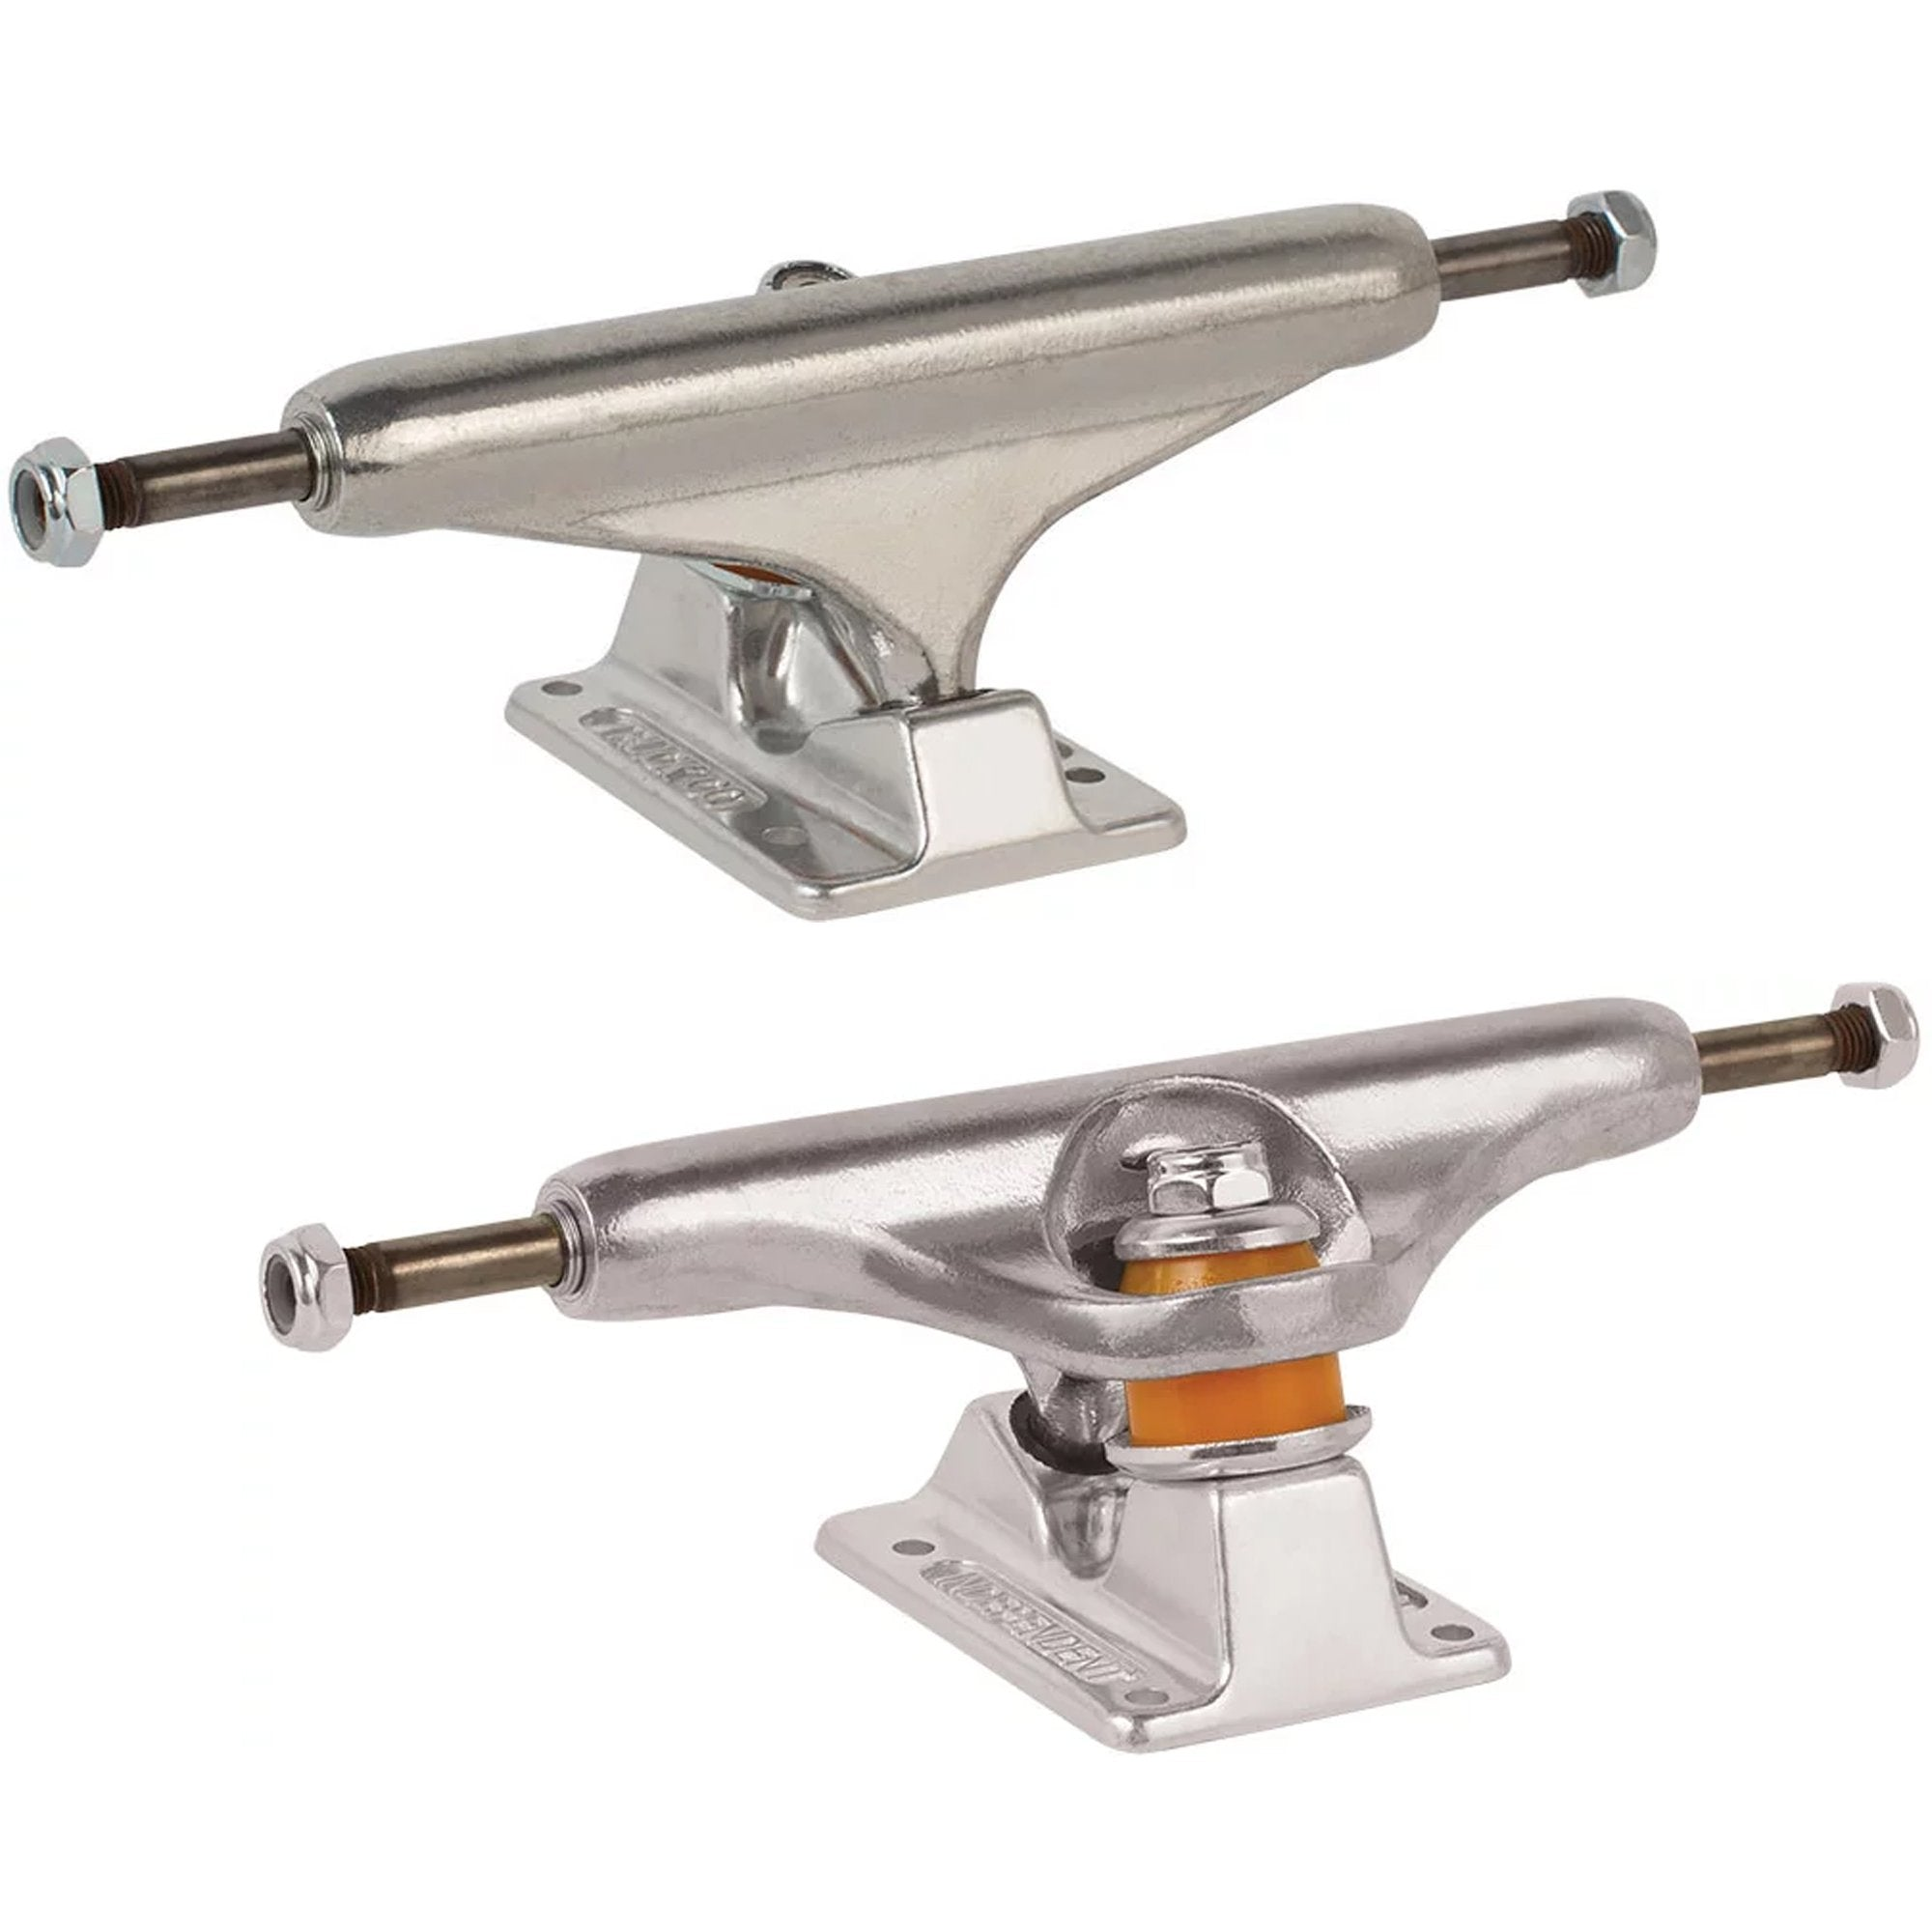 Independent Stage 11 Forged Titanium Hollow 149mm Skateboard Trucks